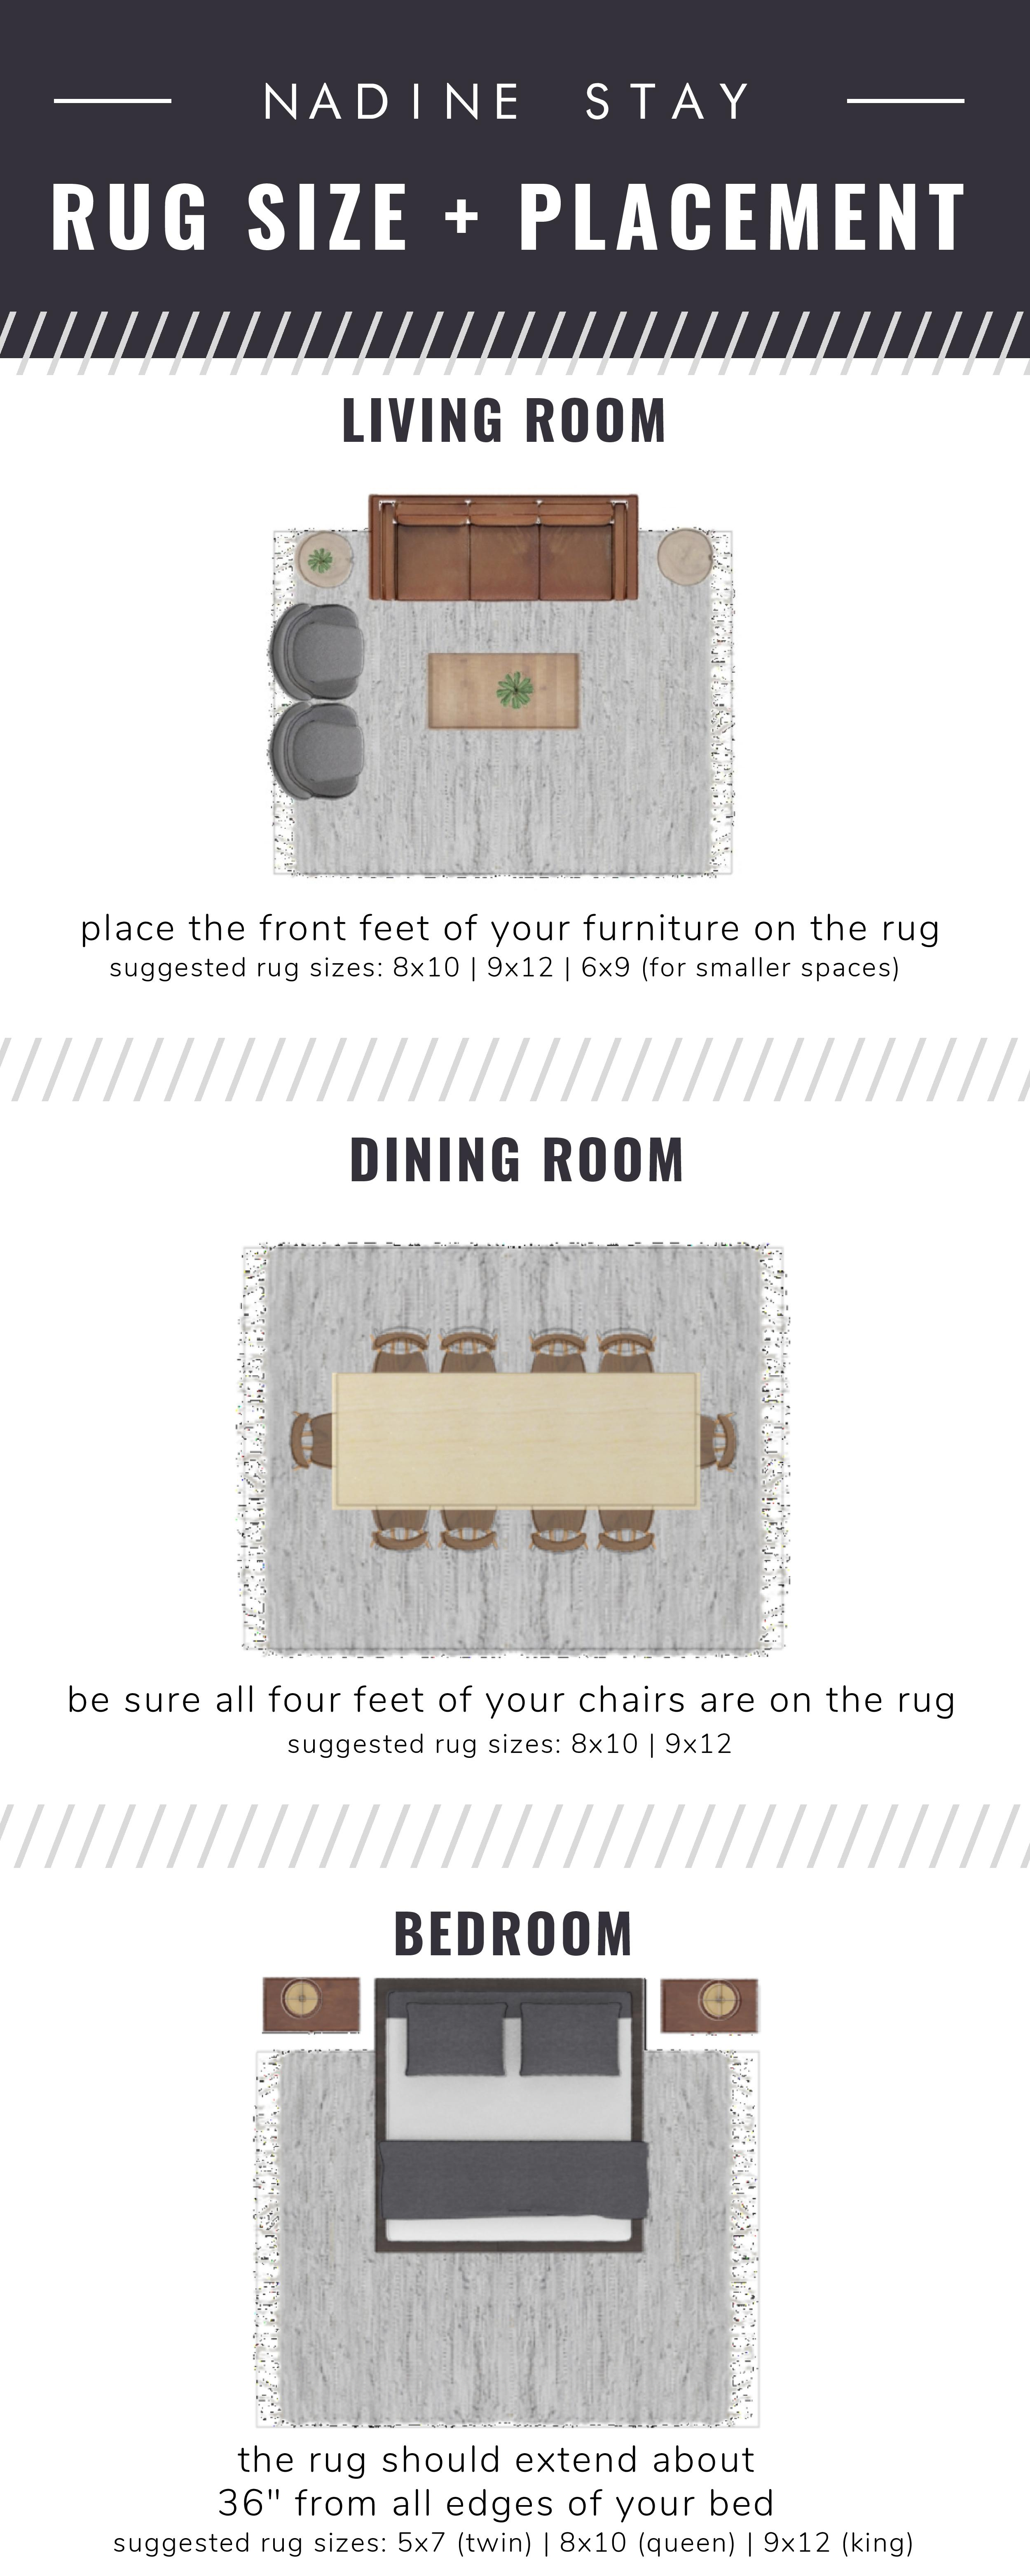 Rug Sizing Rug Size Placement Guide Nadine Stay